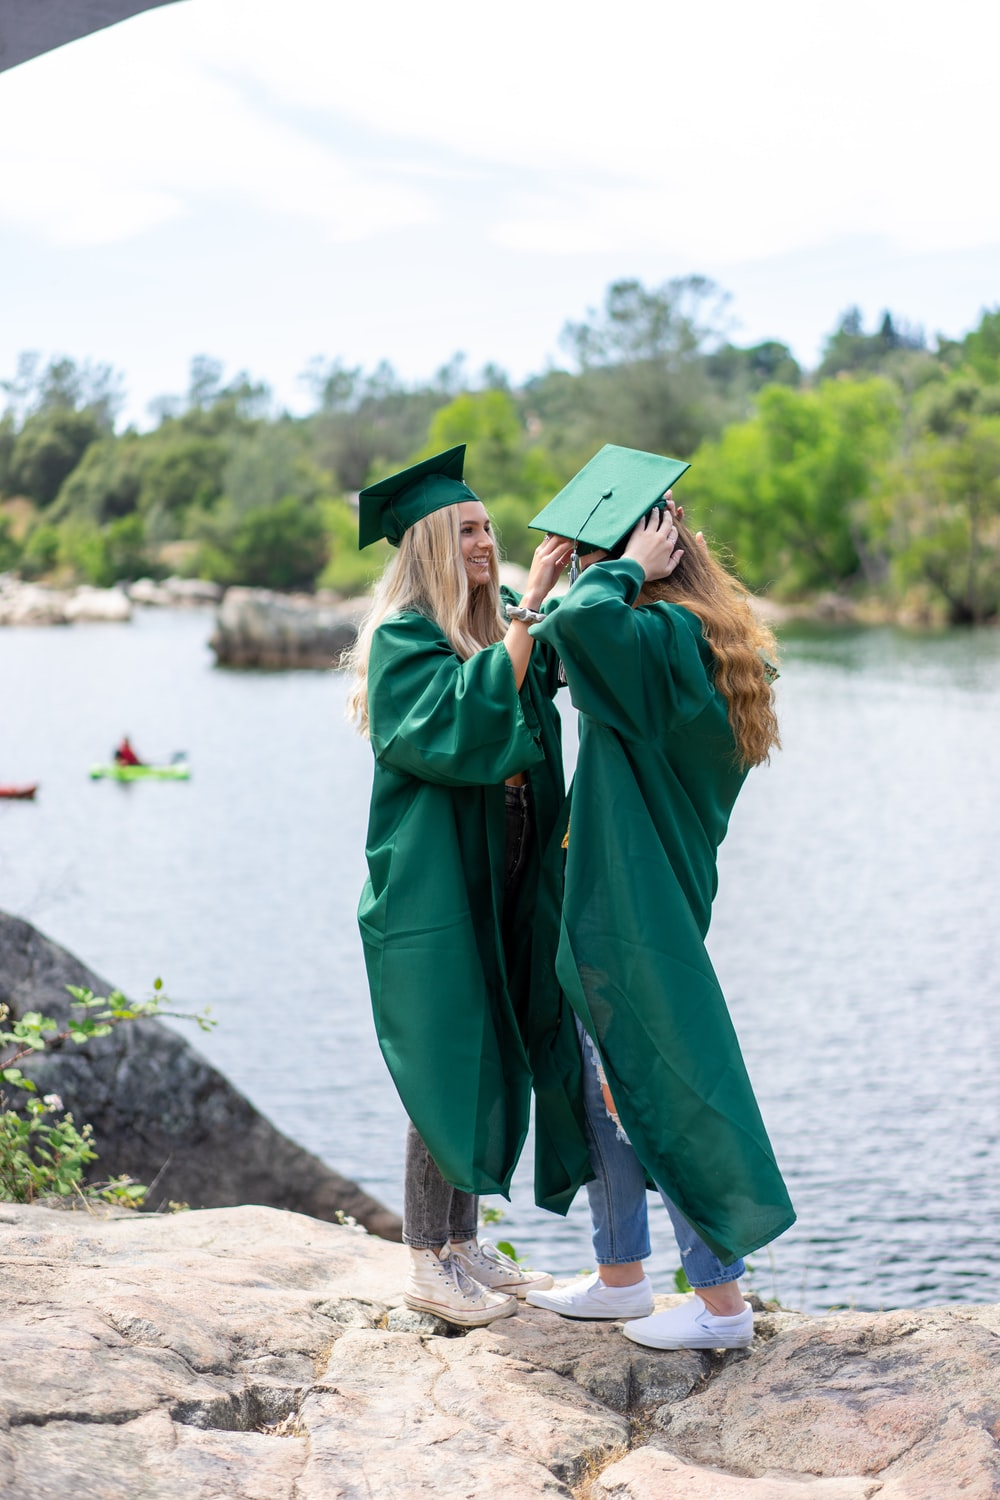 woman in green academic dress and black mortar board standing on brown wooden log during daytime